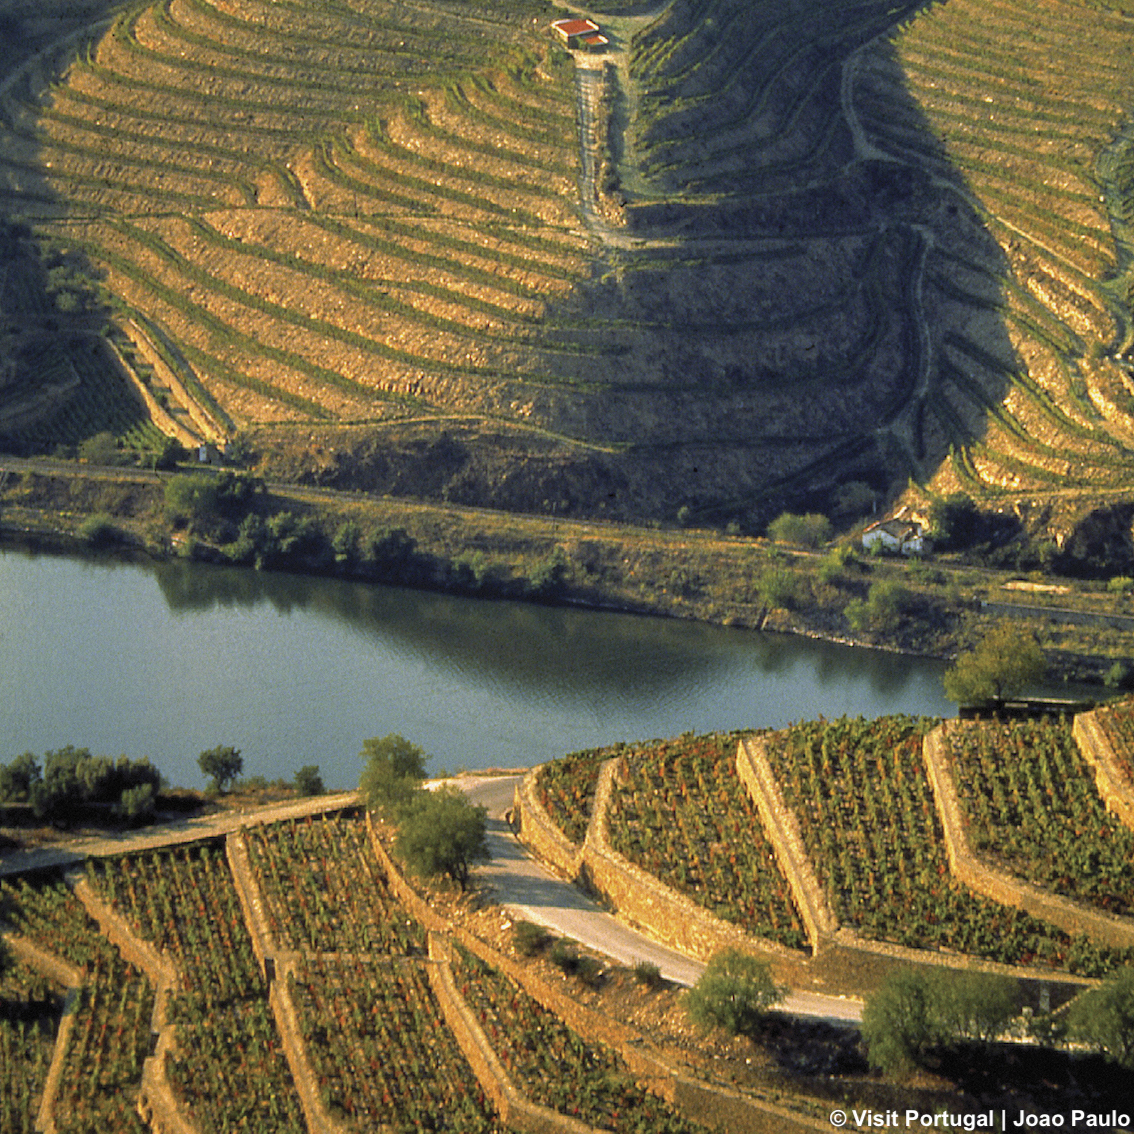 http://www.turismoitalianews.it/images/stories/portogallo/Douro_Foliage01.jpg